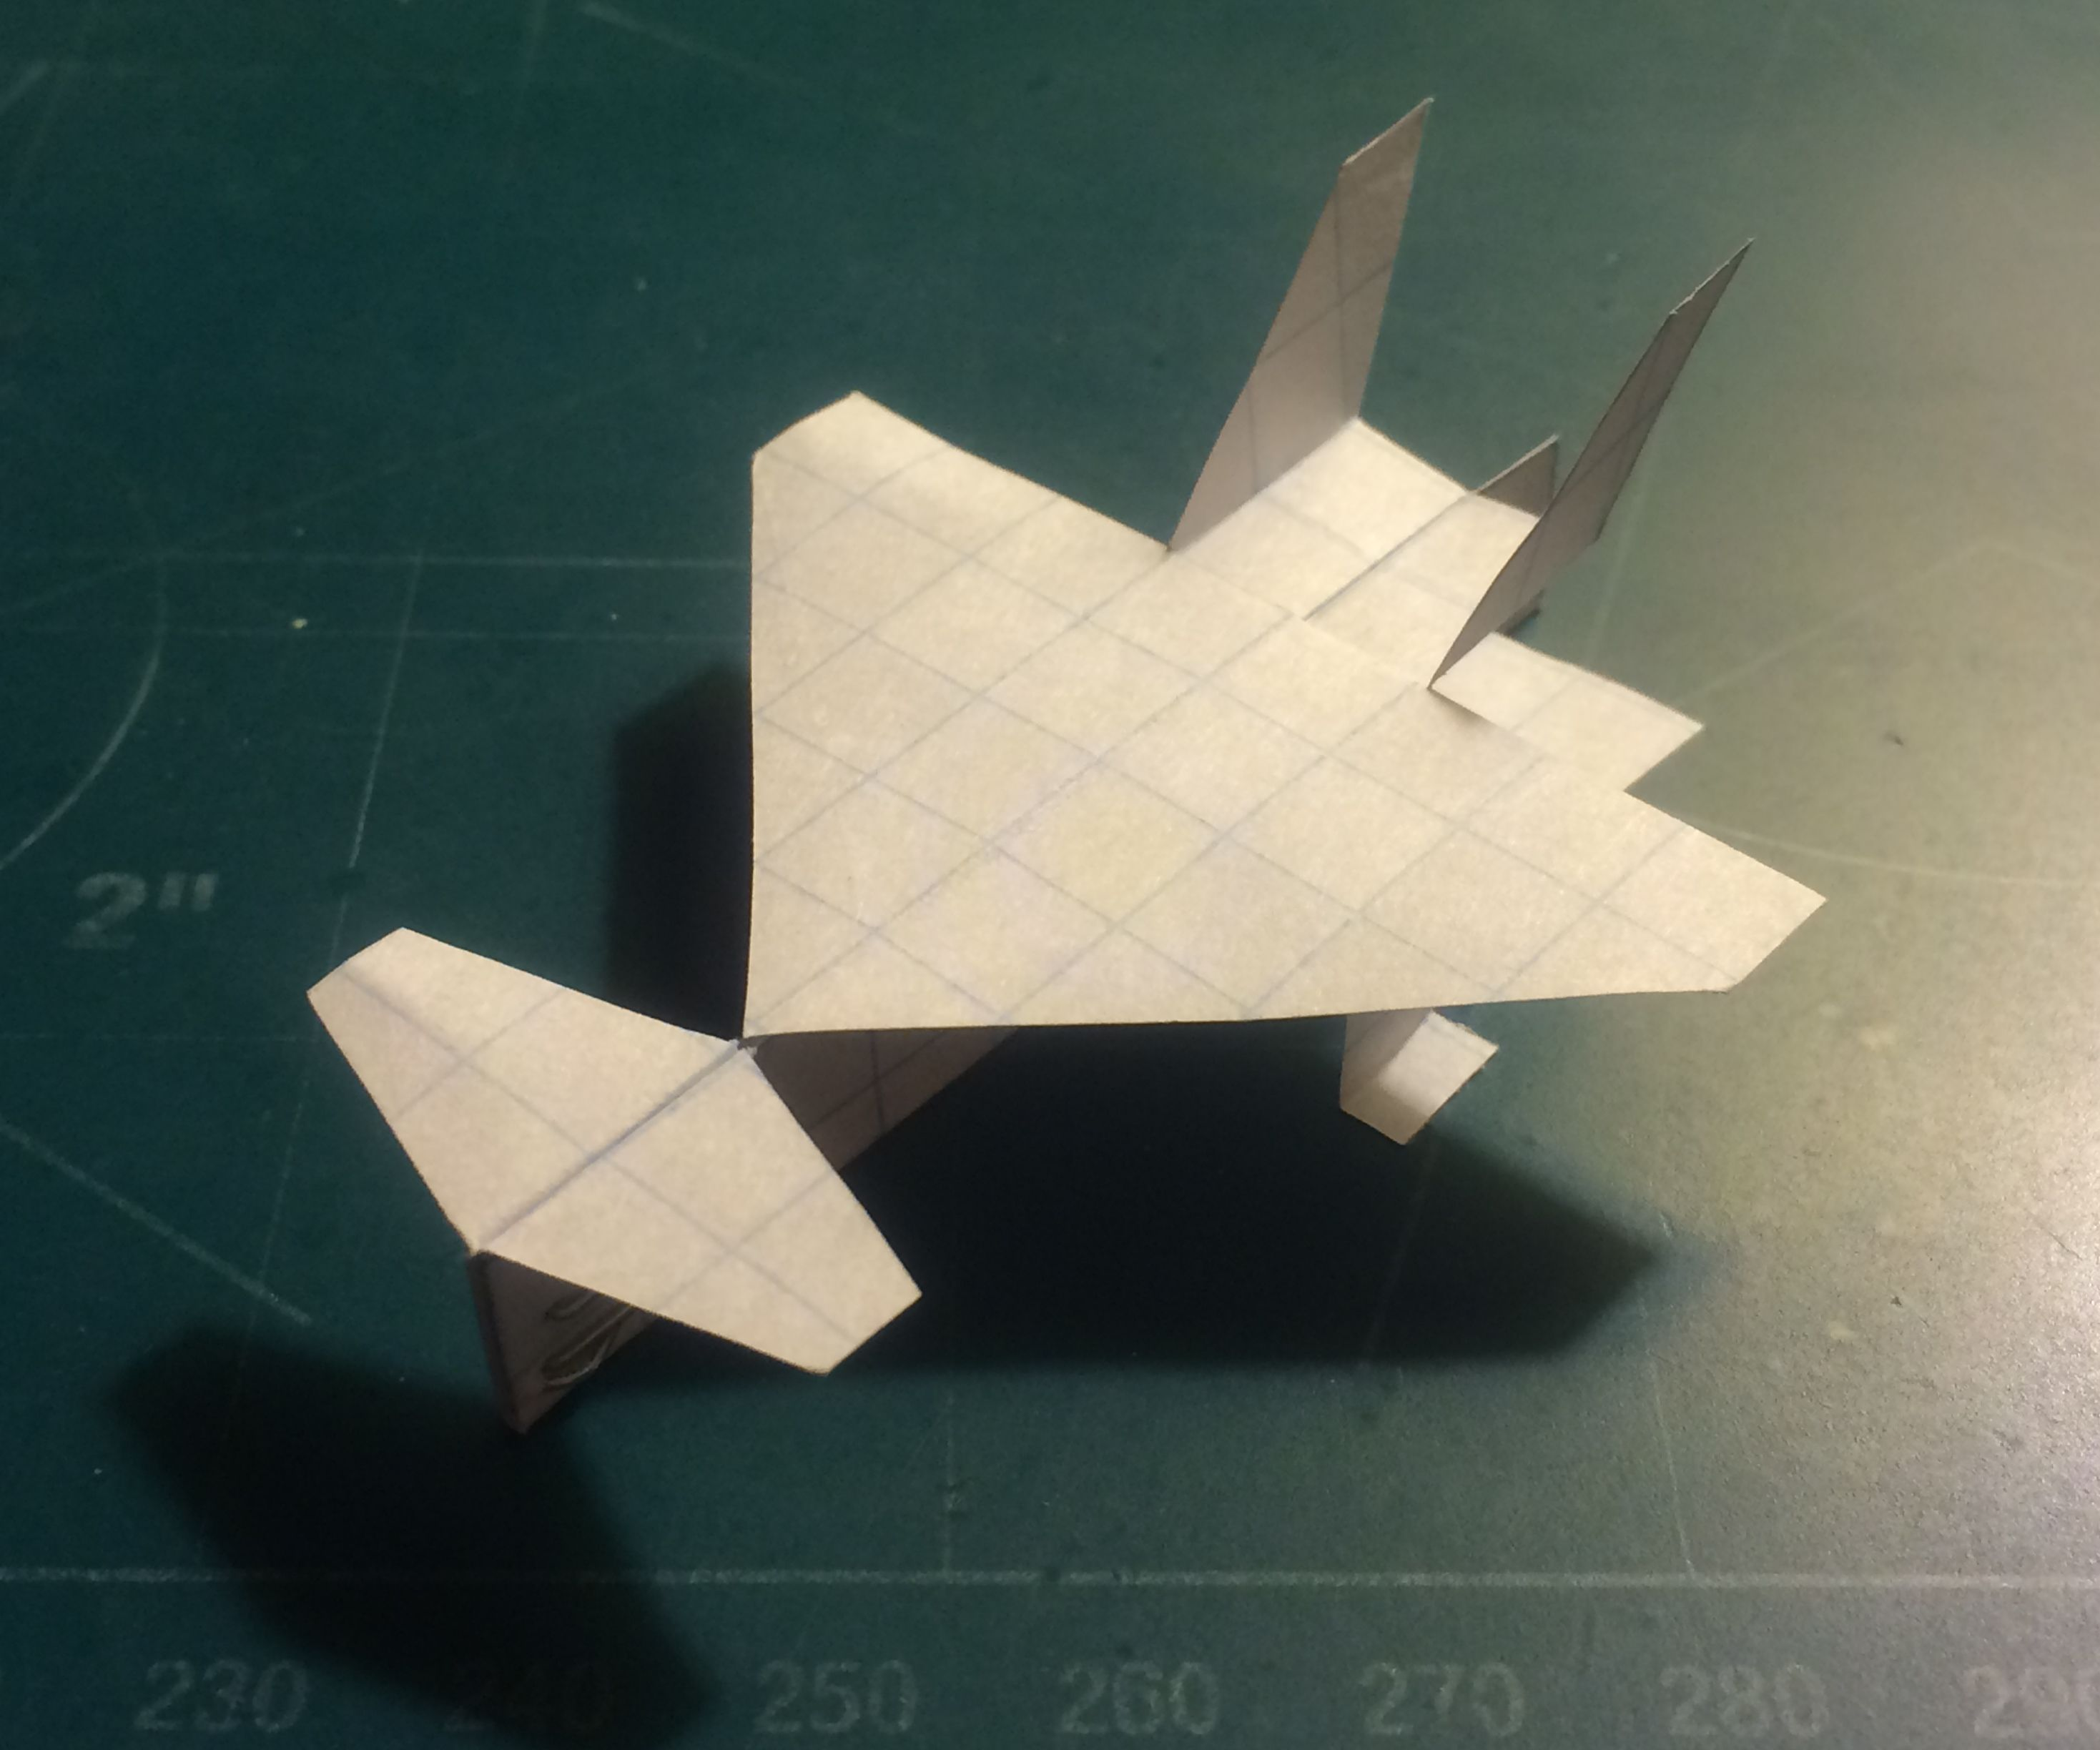 How To Make The UltraSerpent Paper Airplane